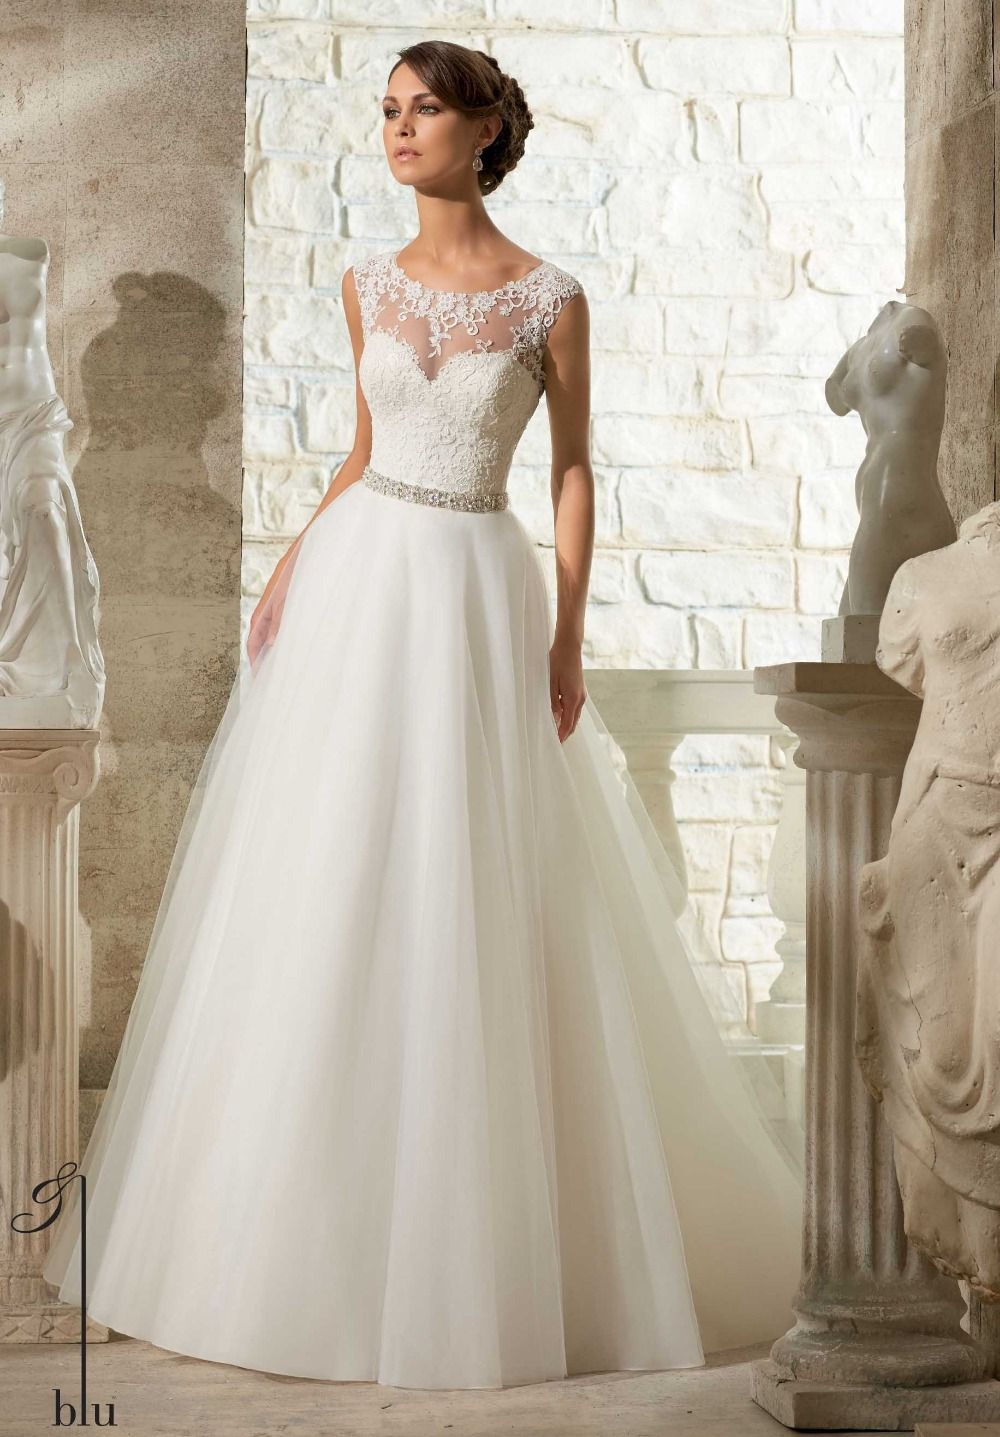 Find More Wedding Dresses Information About High Fashion In Stock A Line Beading Sash